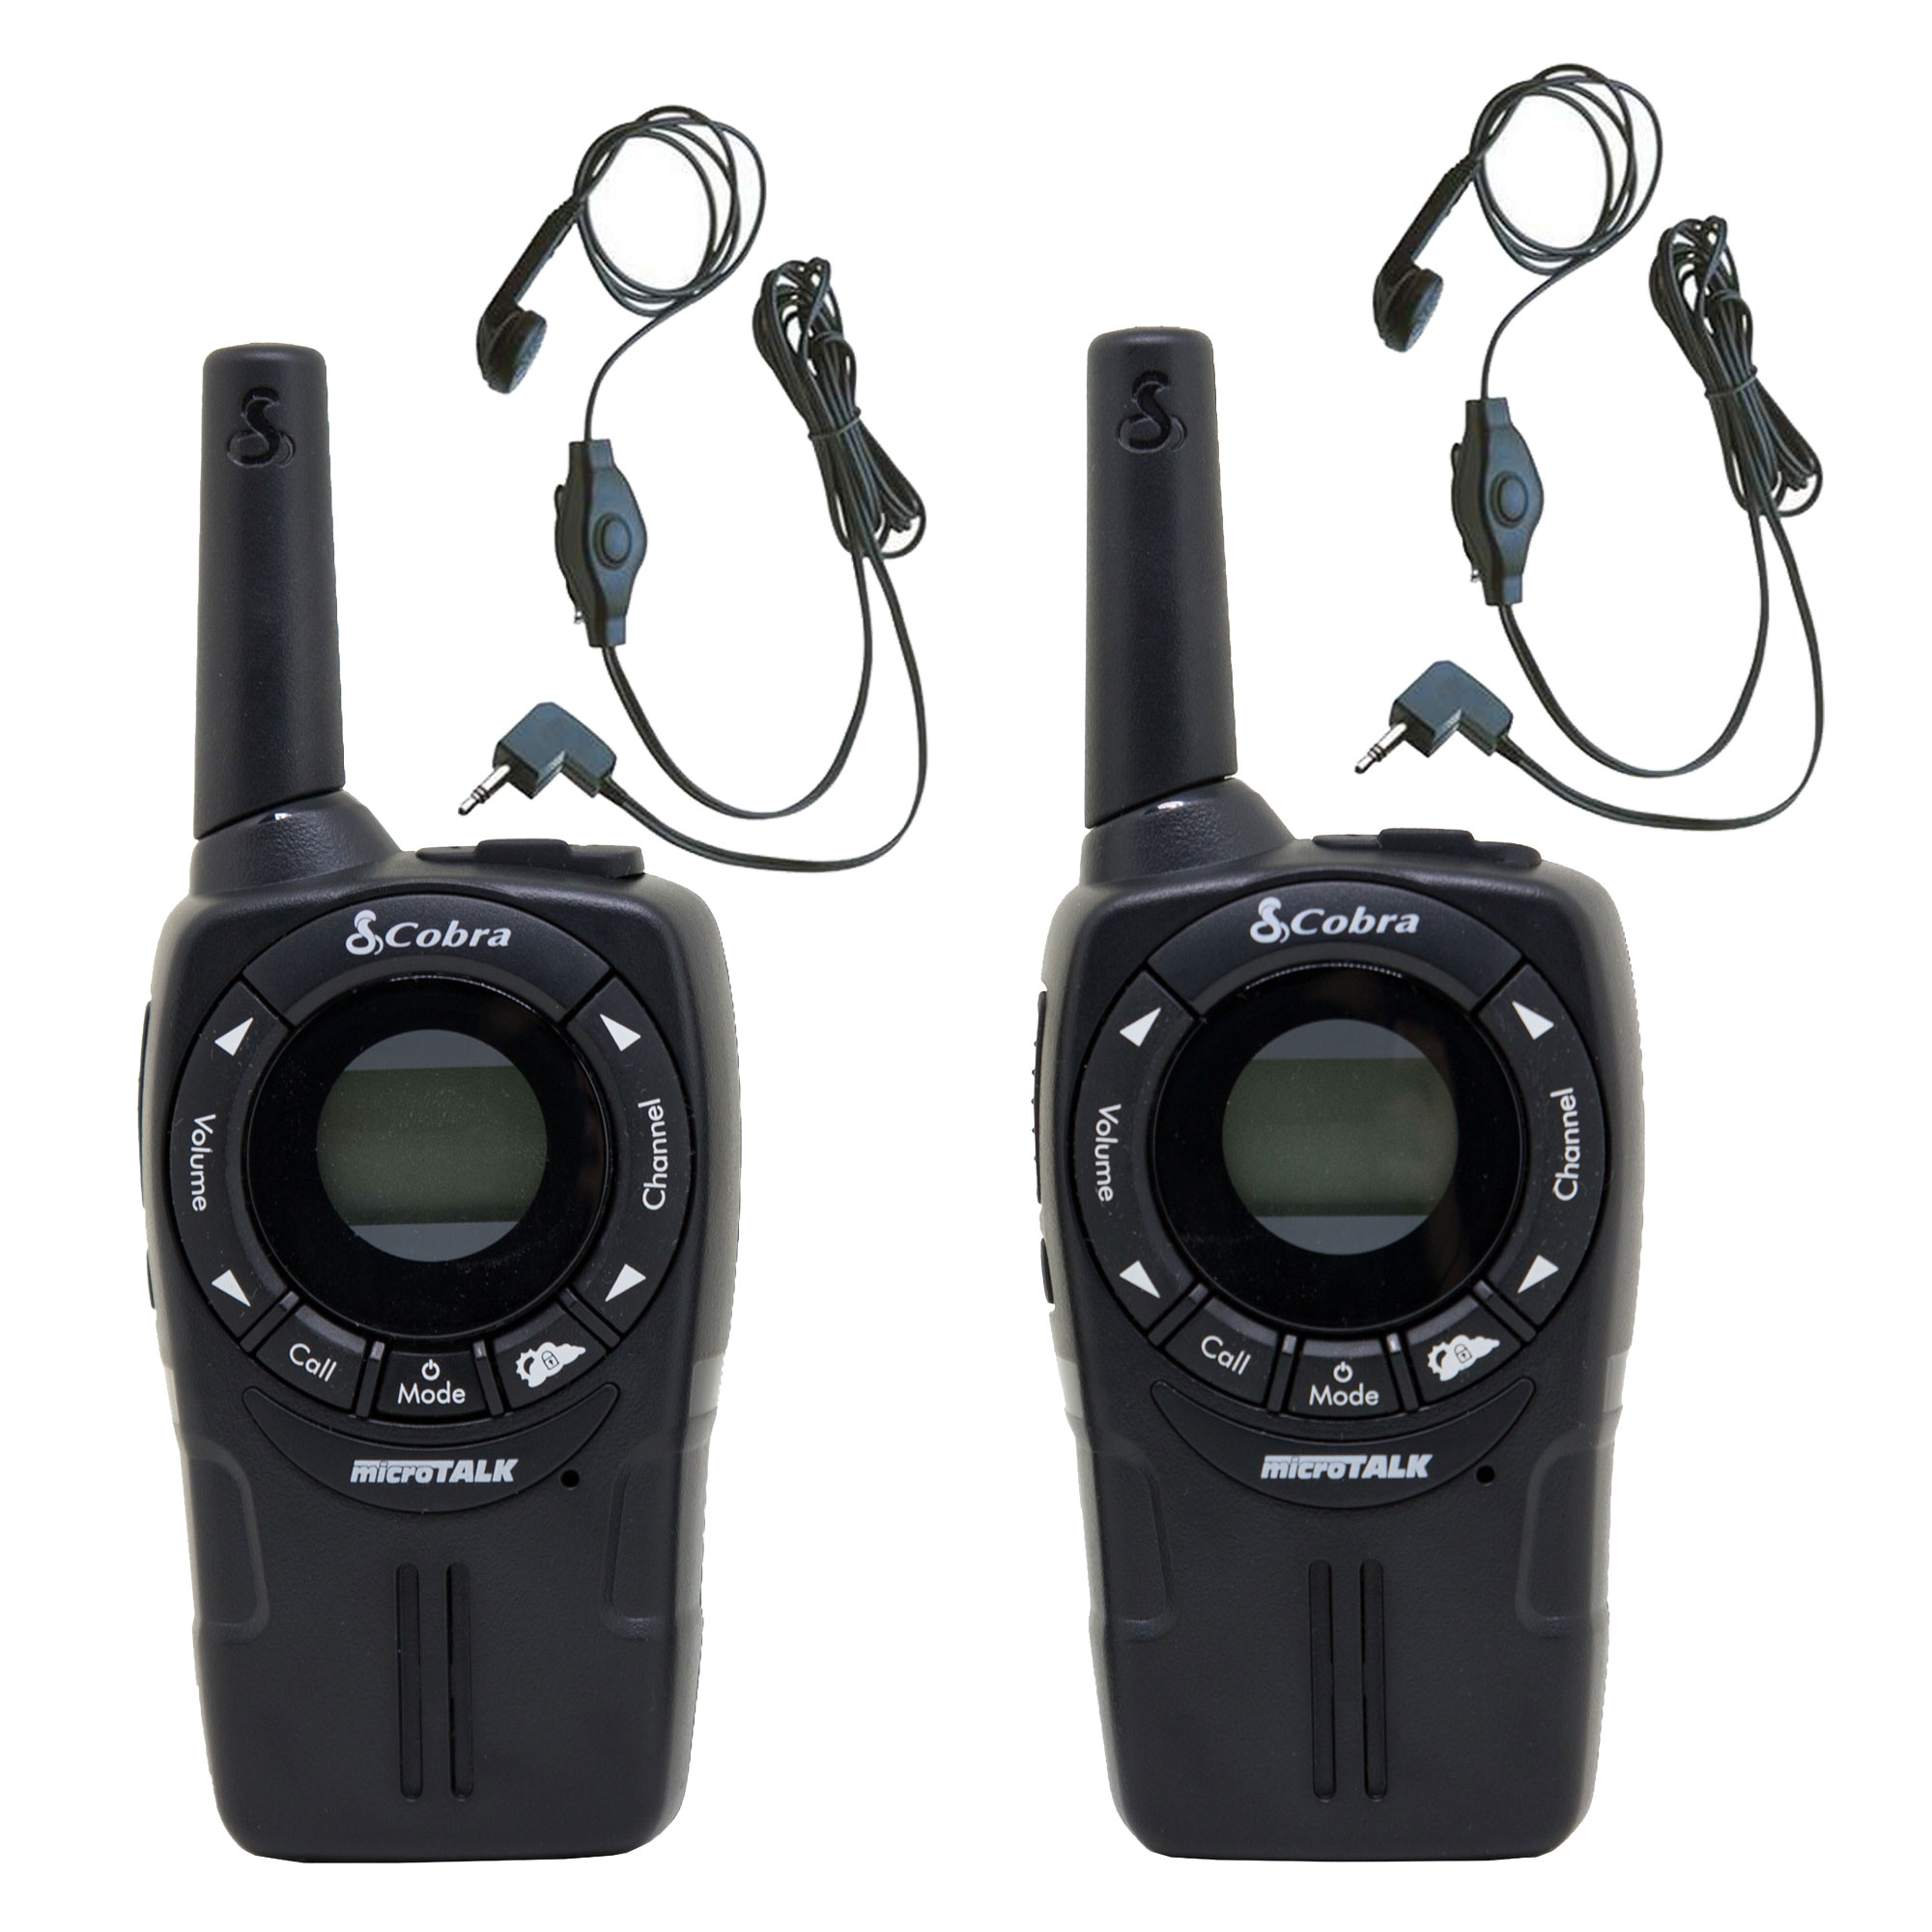 Click here to buy COBRA CXT225 20 Mile GMRS FRS 2-Way Radio Walkie Talkies + (2) Earbud & Mic Sets by Cobra.